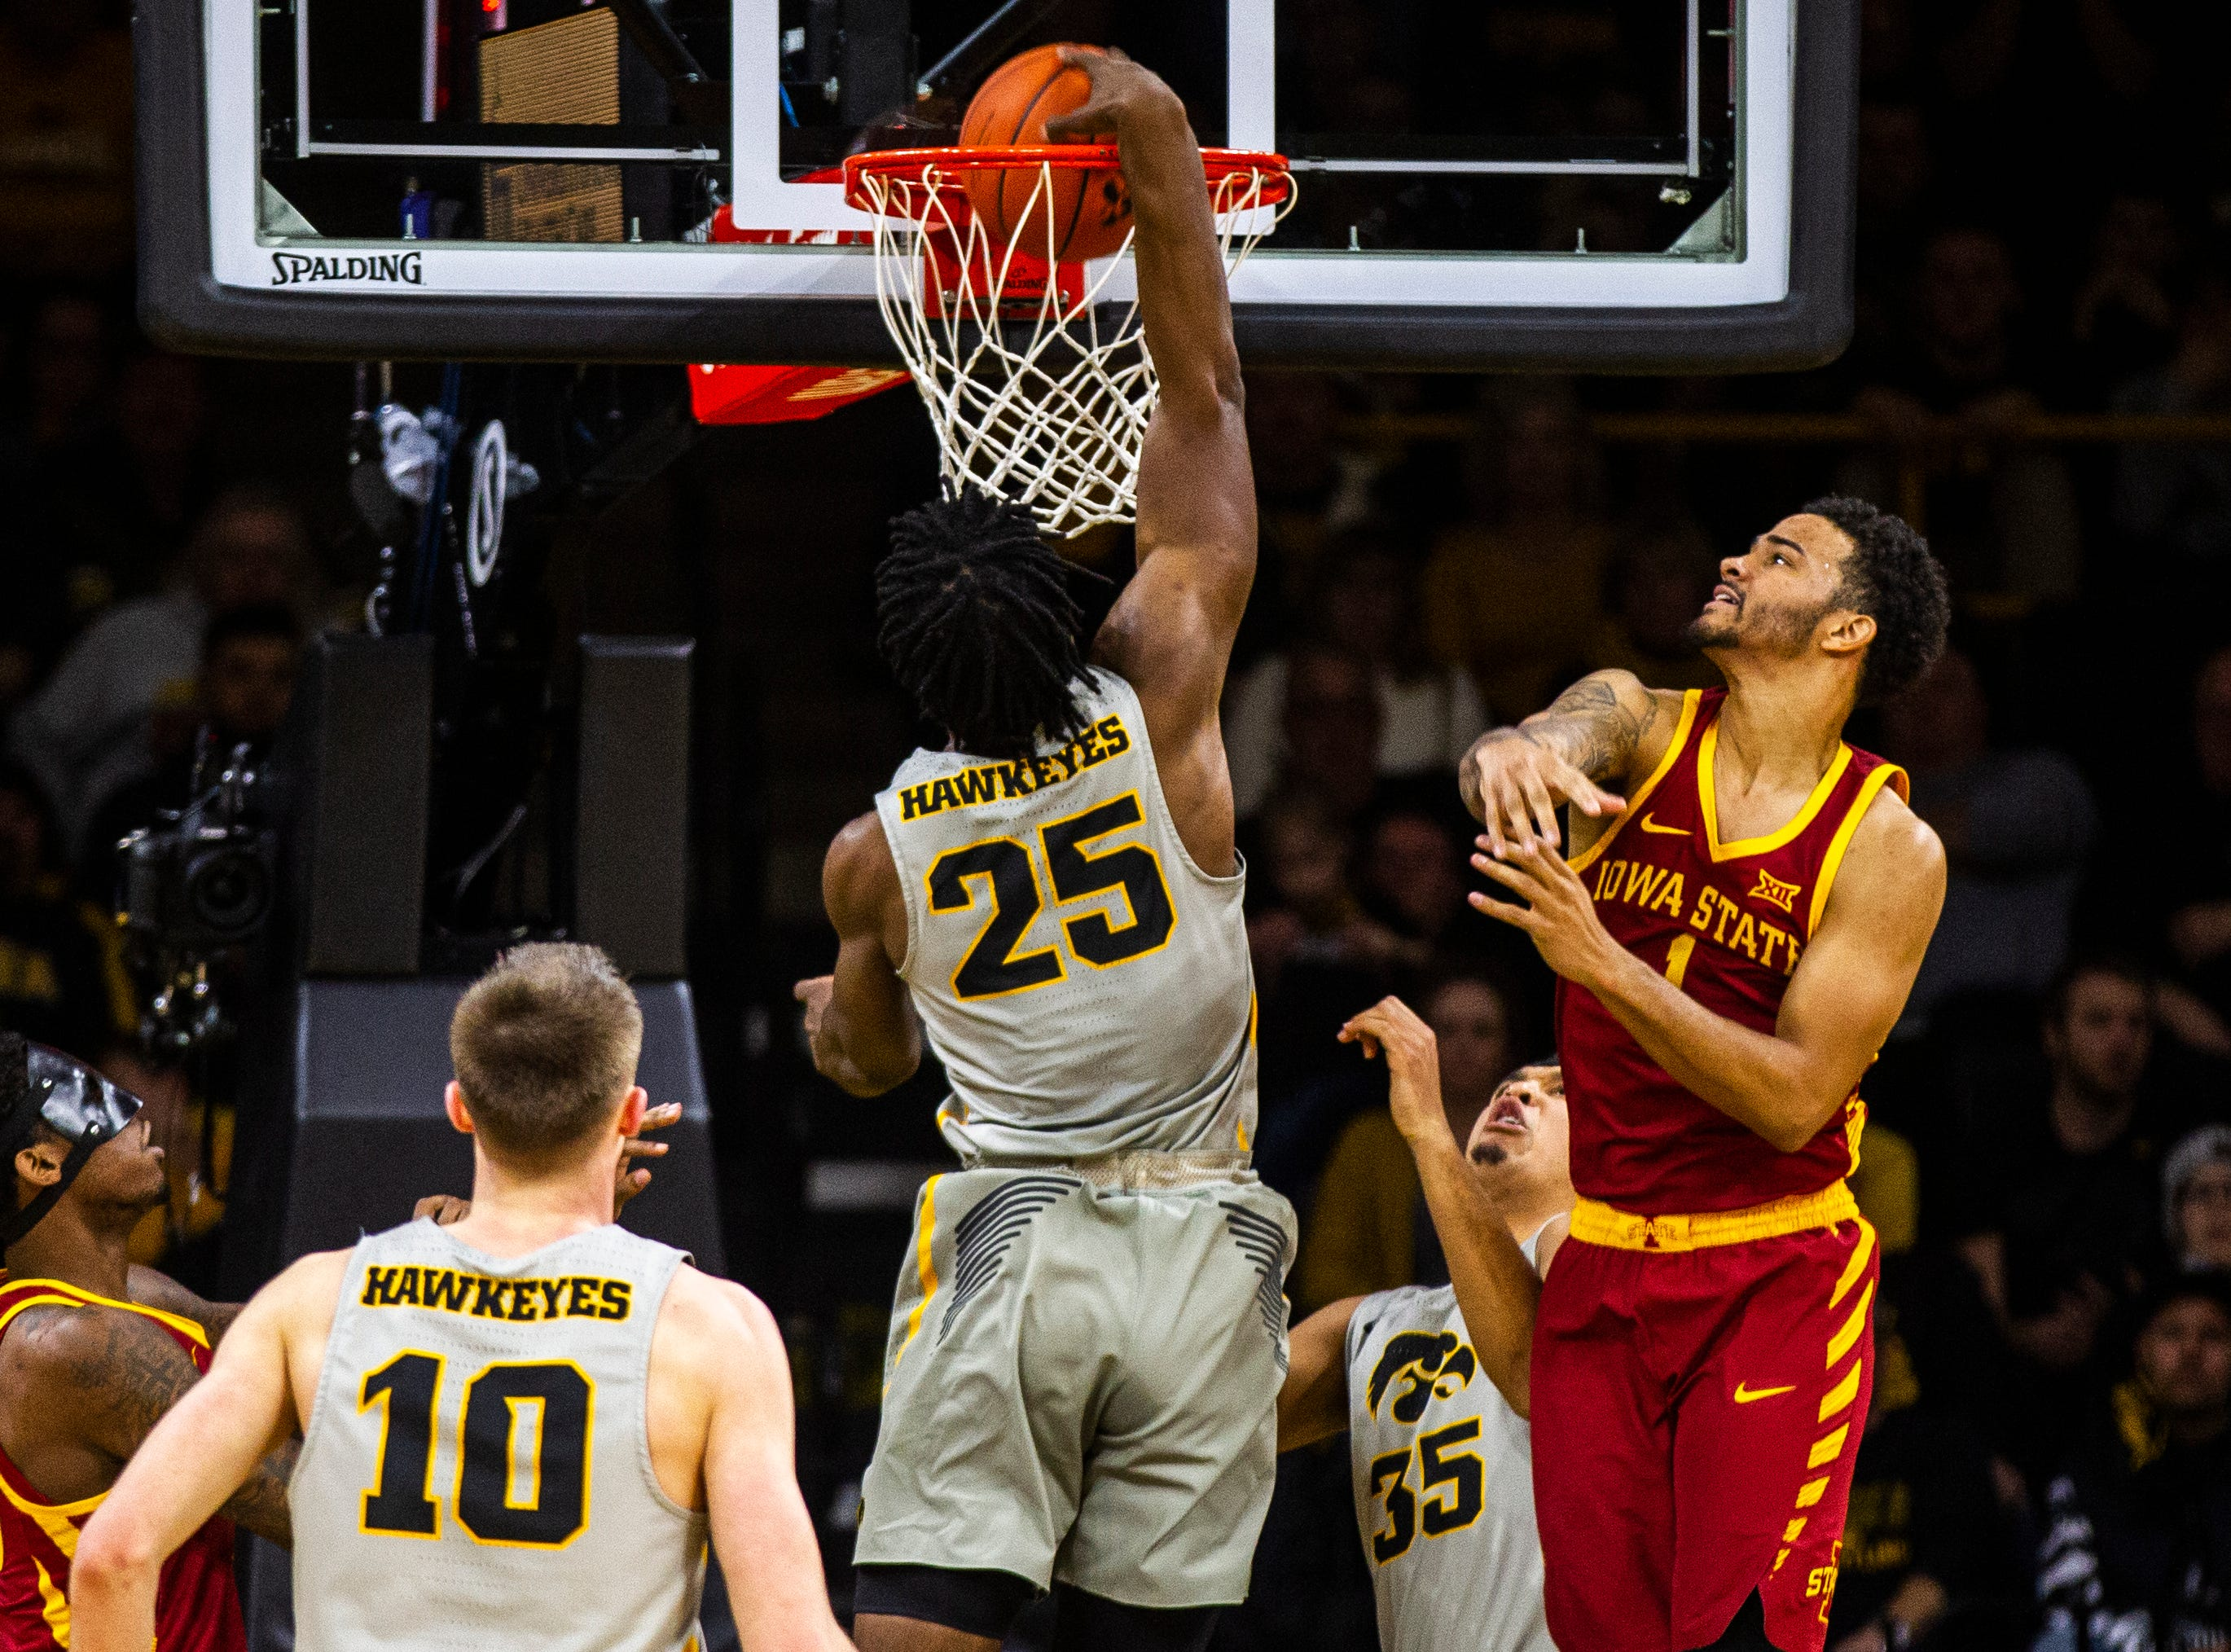 Iowa forward Tyler Cook (25) dunks during a NCAA Cy-Hawk series men's basketball game on Thursday, Dec. 6, 2018, at Carver-Hawkeye Arena in Iowa City.